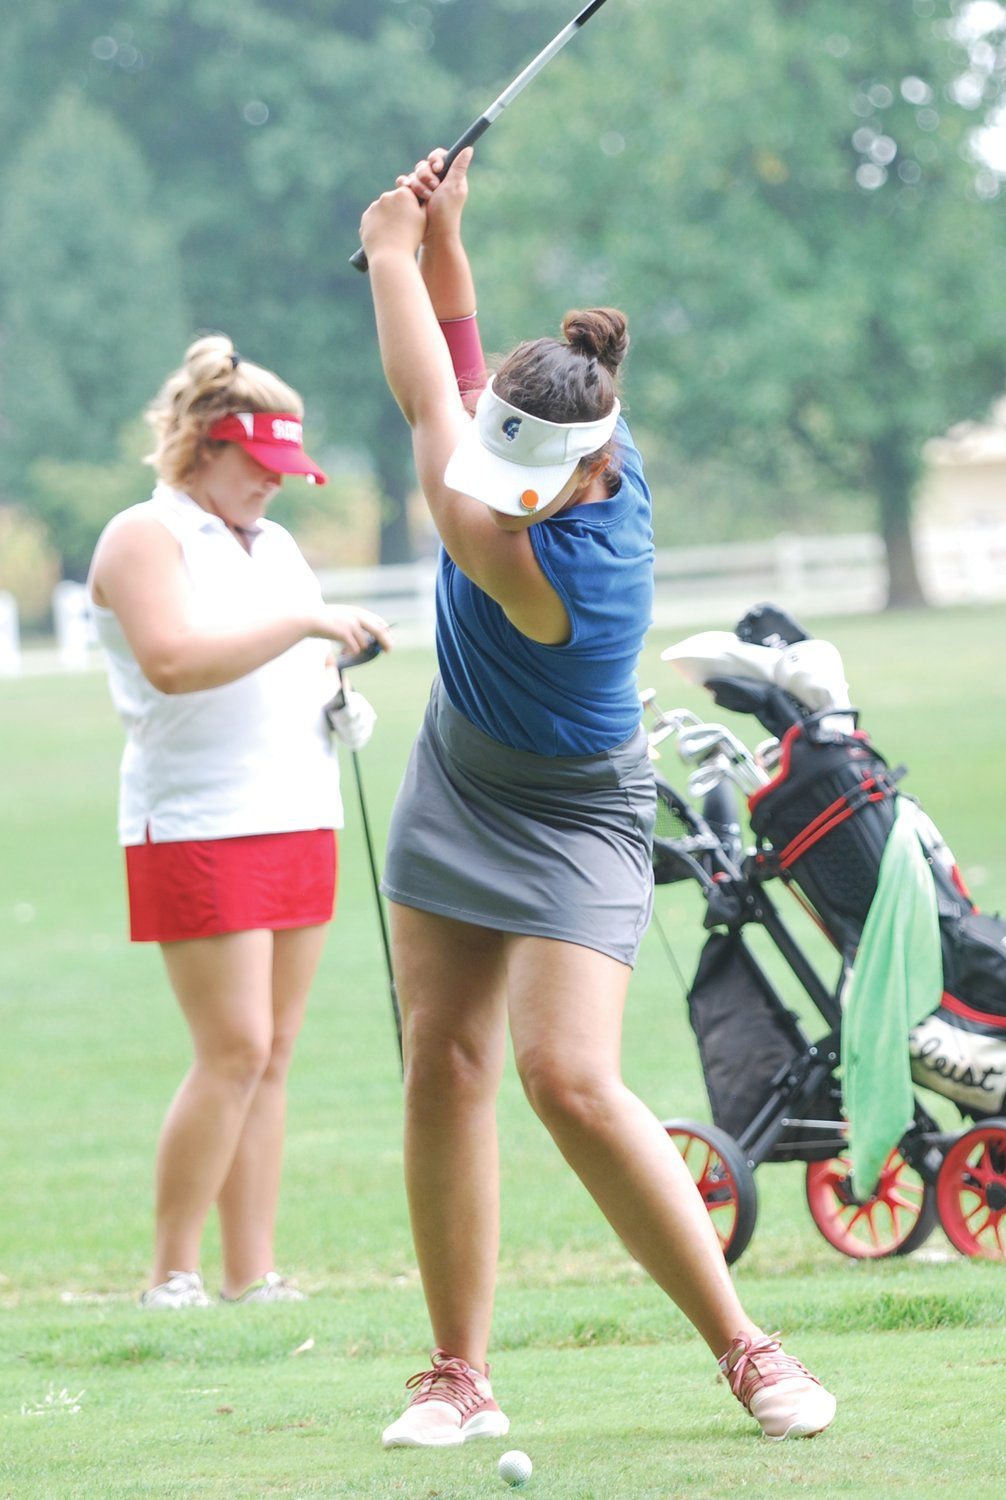 Crawfordsville's Bailey Mittal earned first-team all-conference honors with a round of 89 on Saturday the Crawfordsville Country Club.